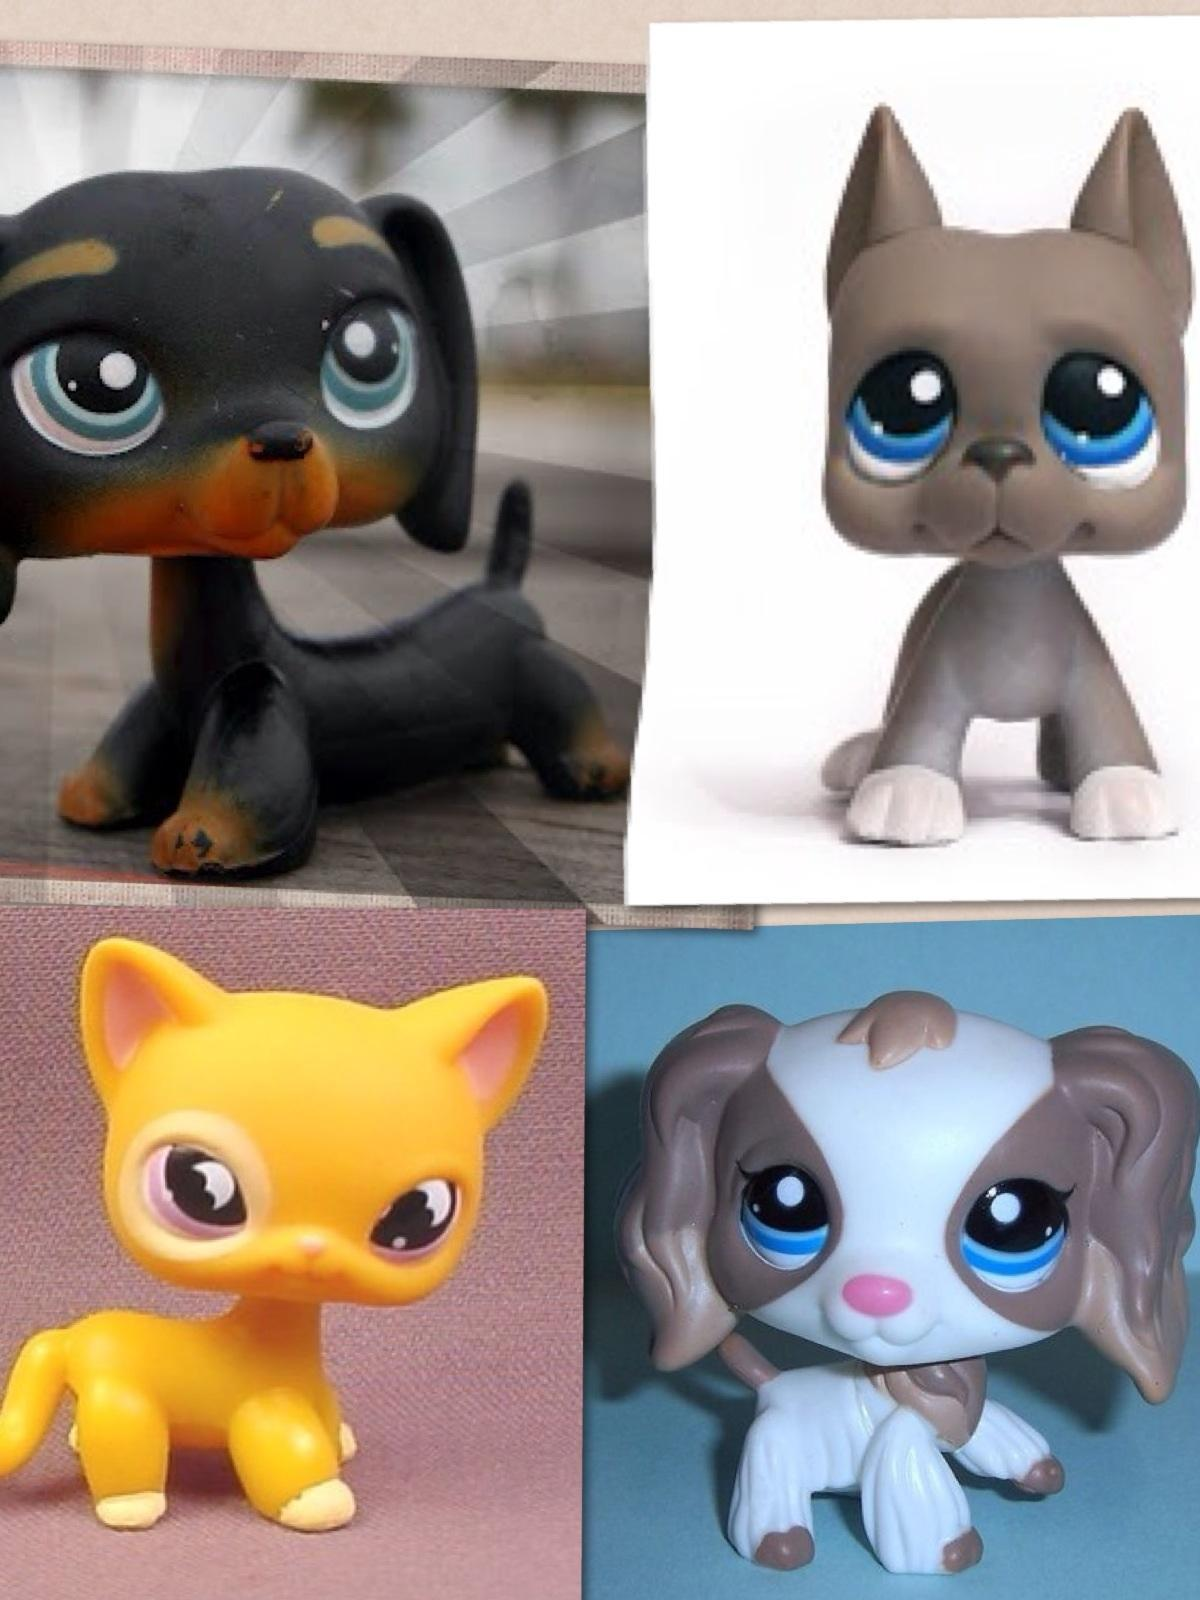 What lps are you (1)